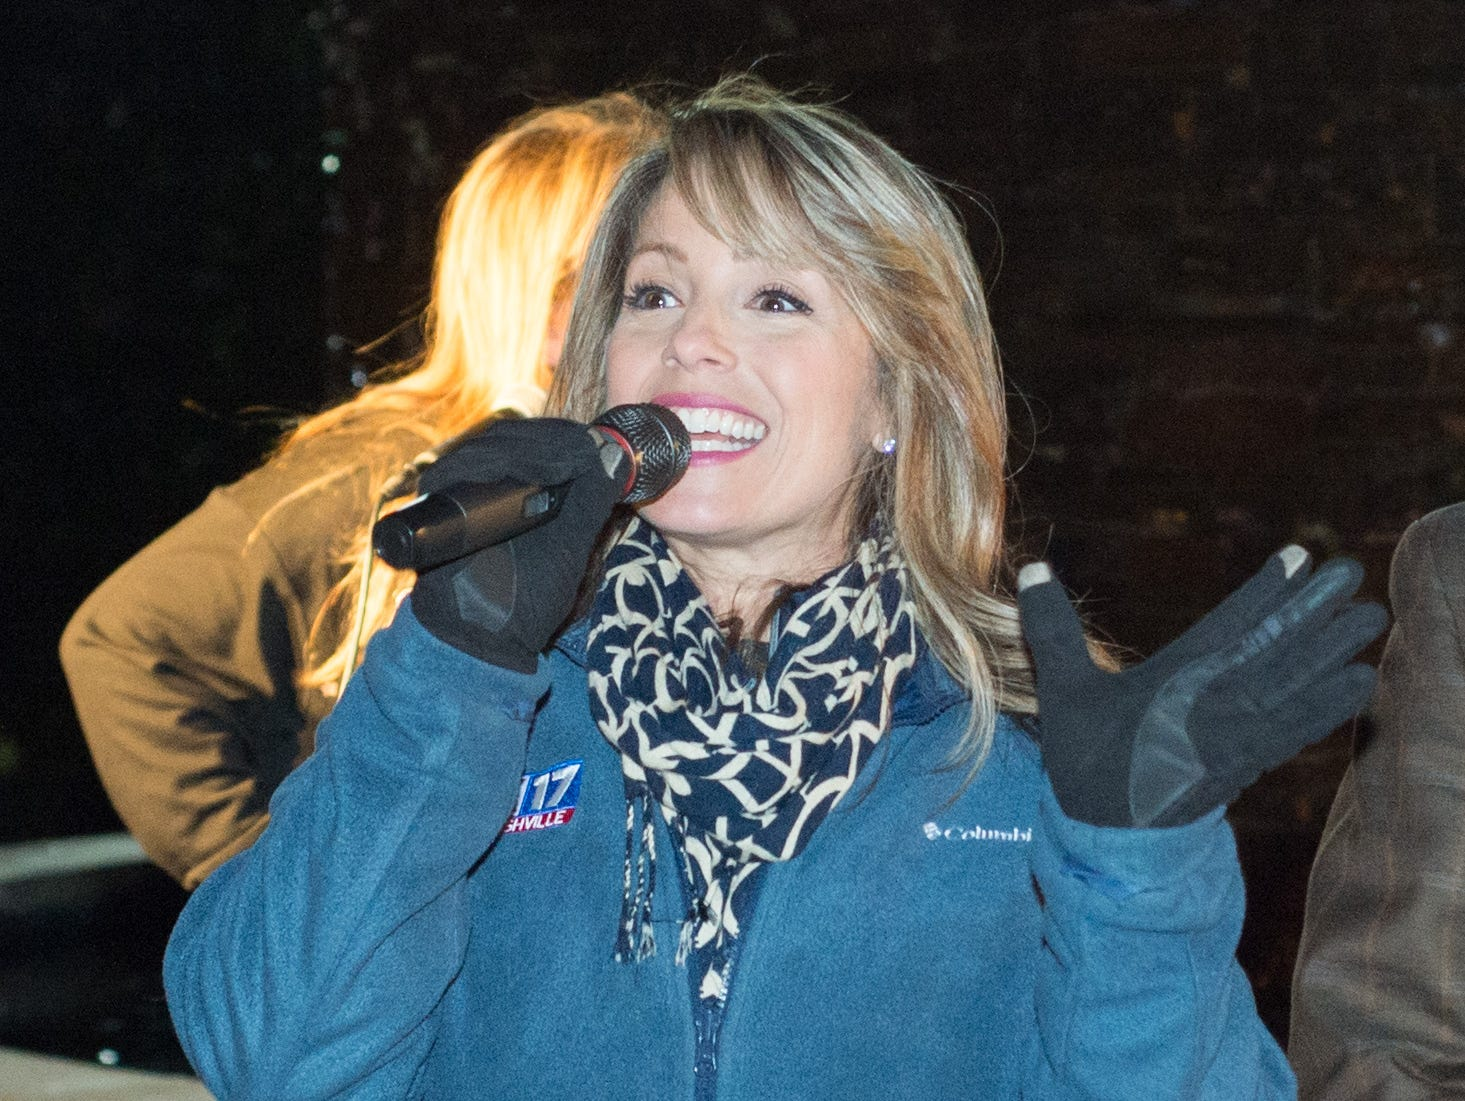 Fox17 anchor and reporter Jennifer Waddell helps to emcee the Hendersonville HolidayFest Annual Tree Lighting Ceremony at Memorial Park on Sunday, Nov. 25.